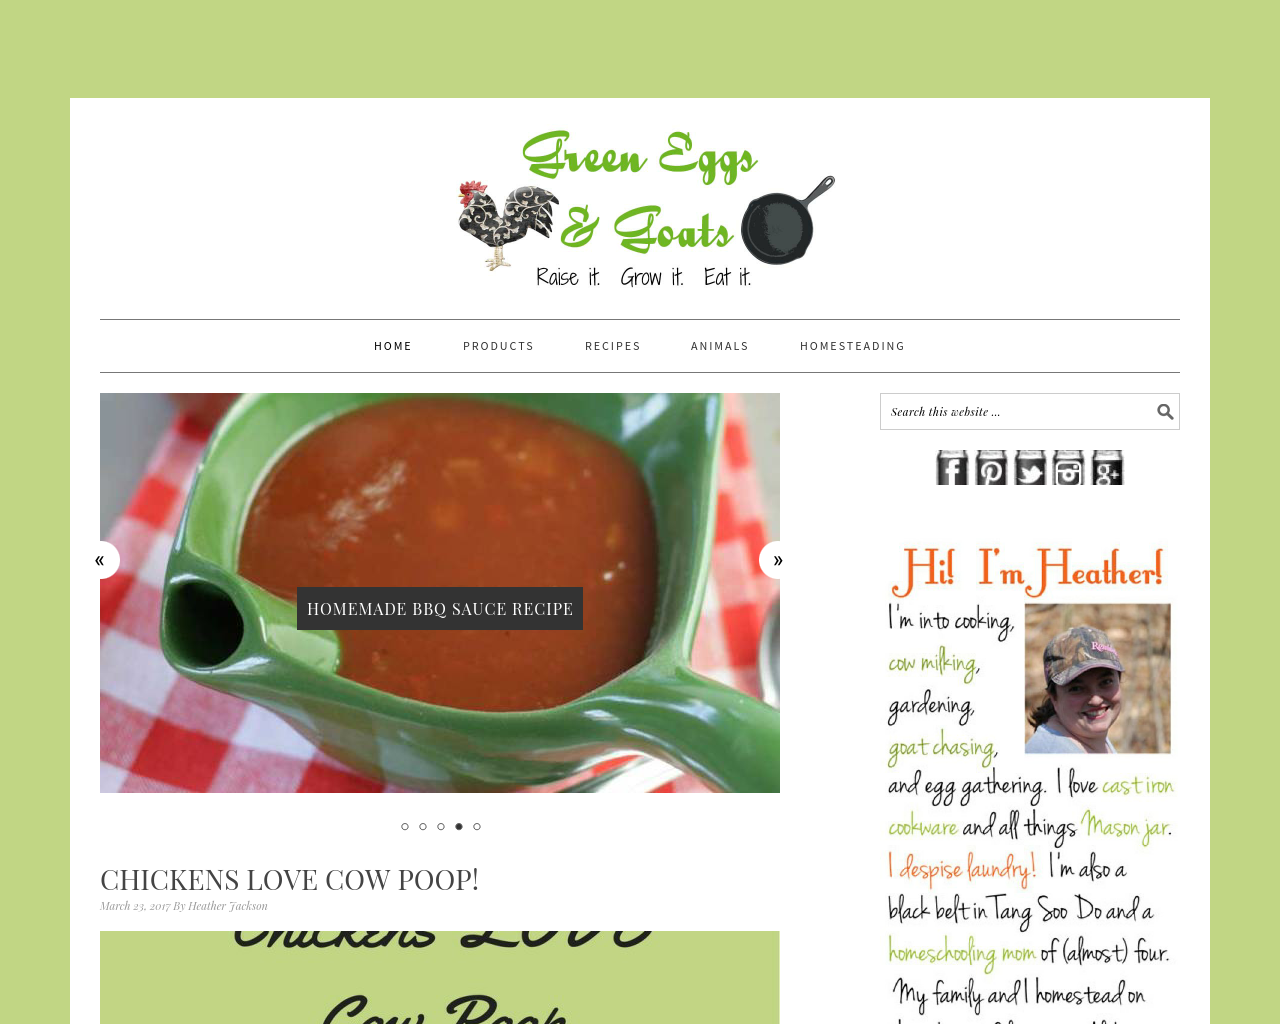 Green-Eggs-&-Goats-Advertising-Reviews-Pricing